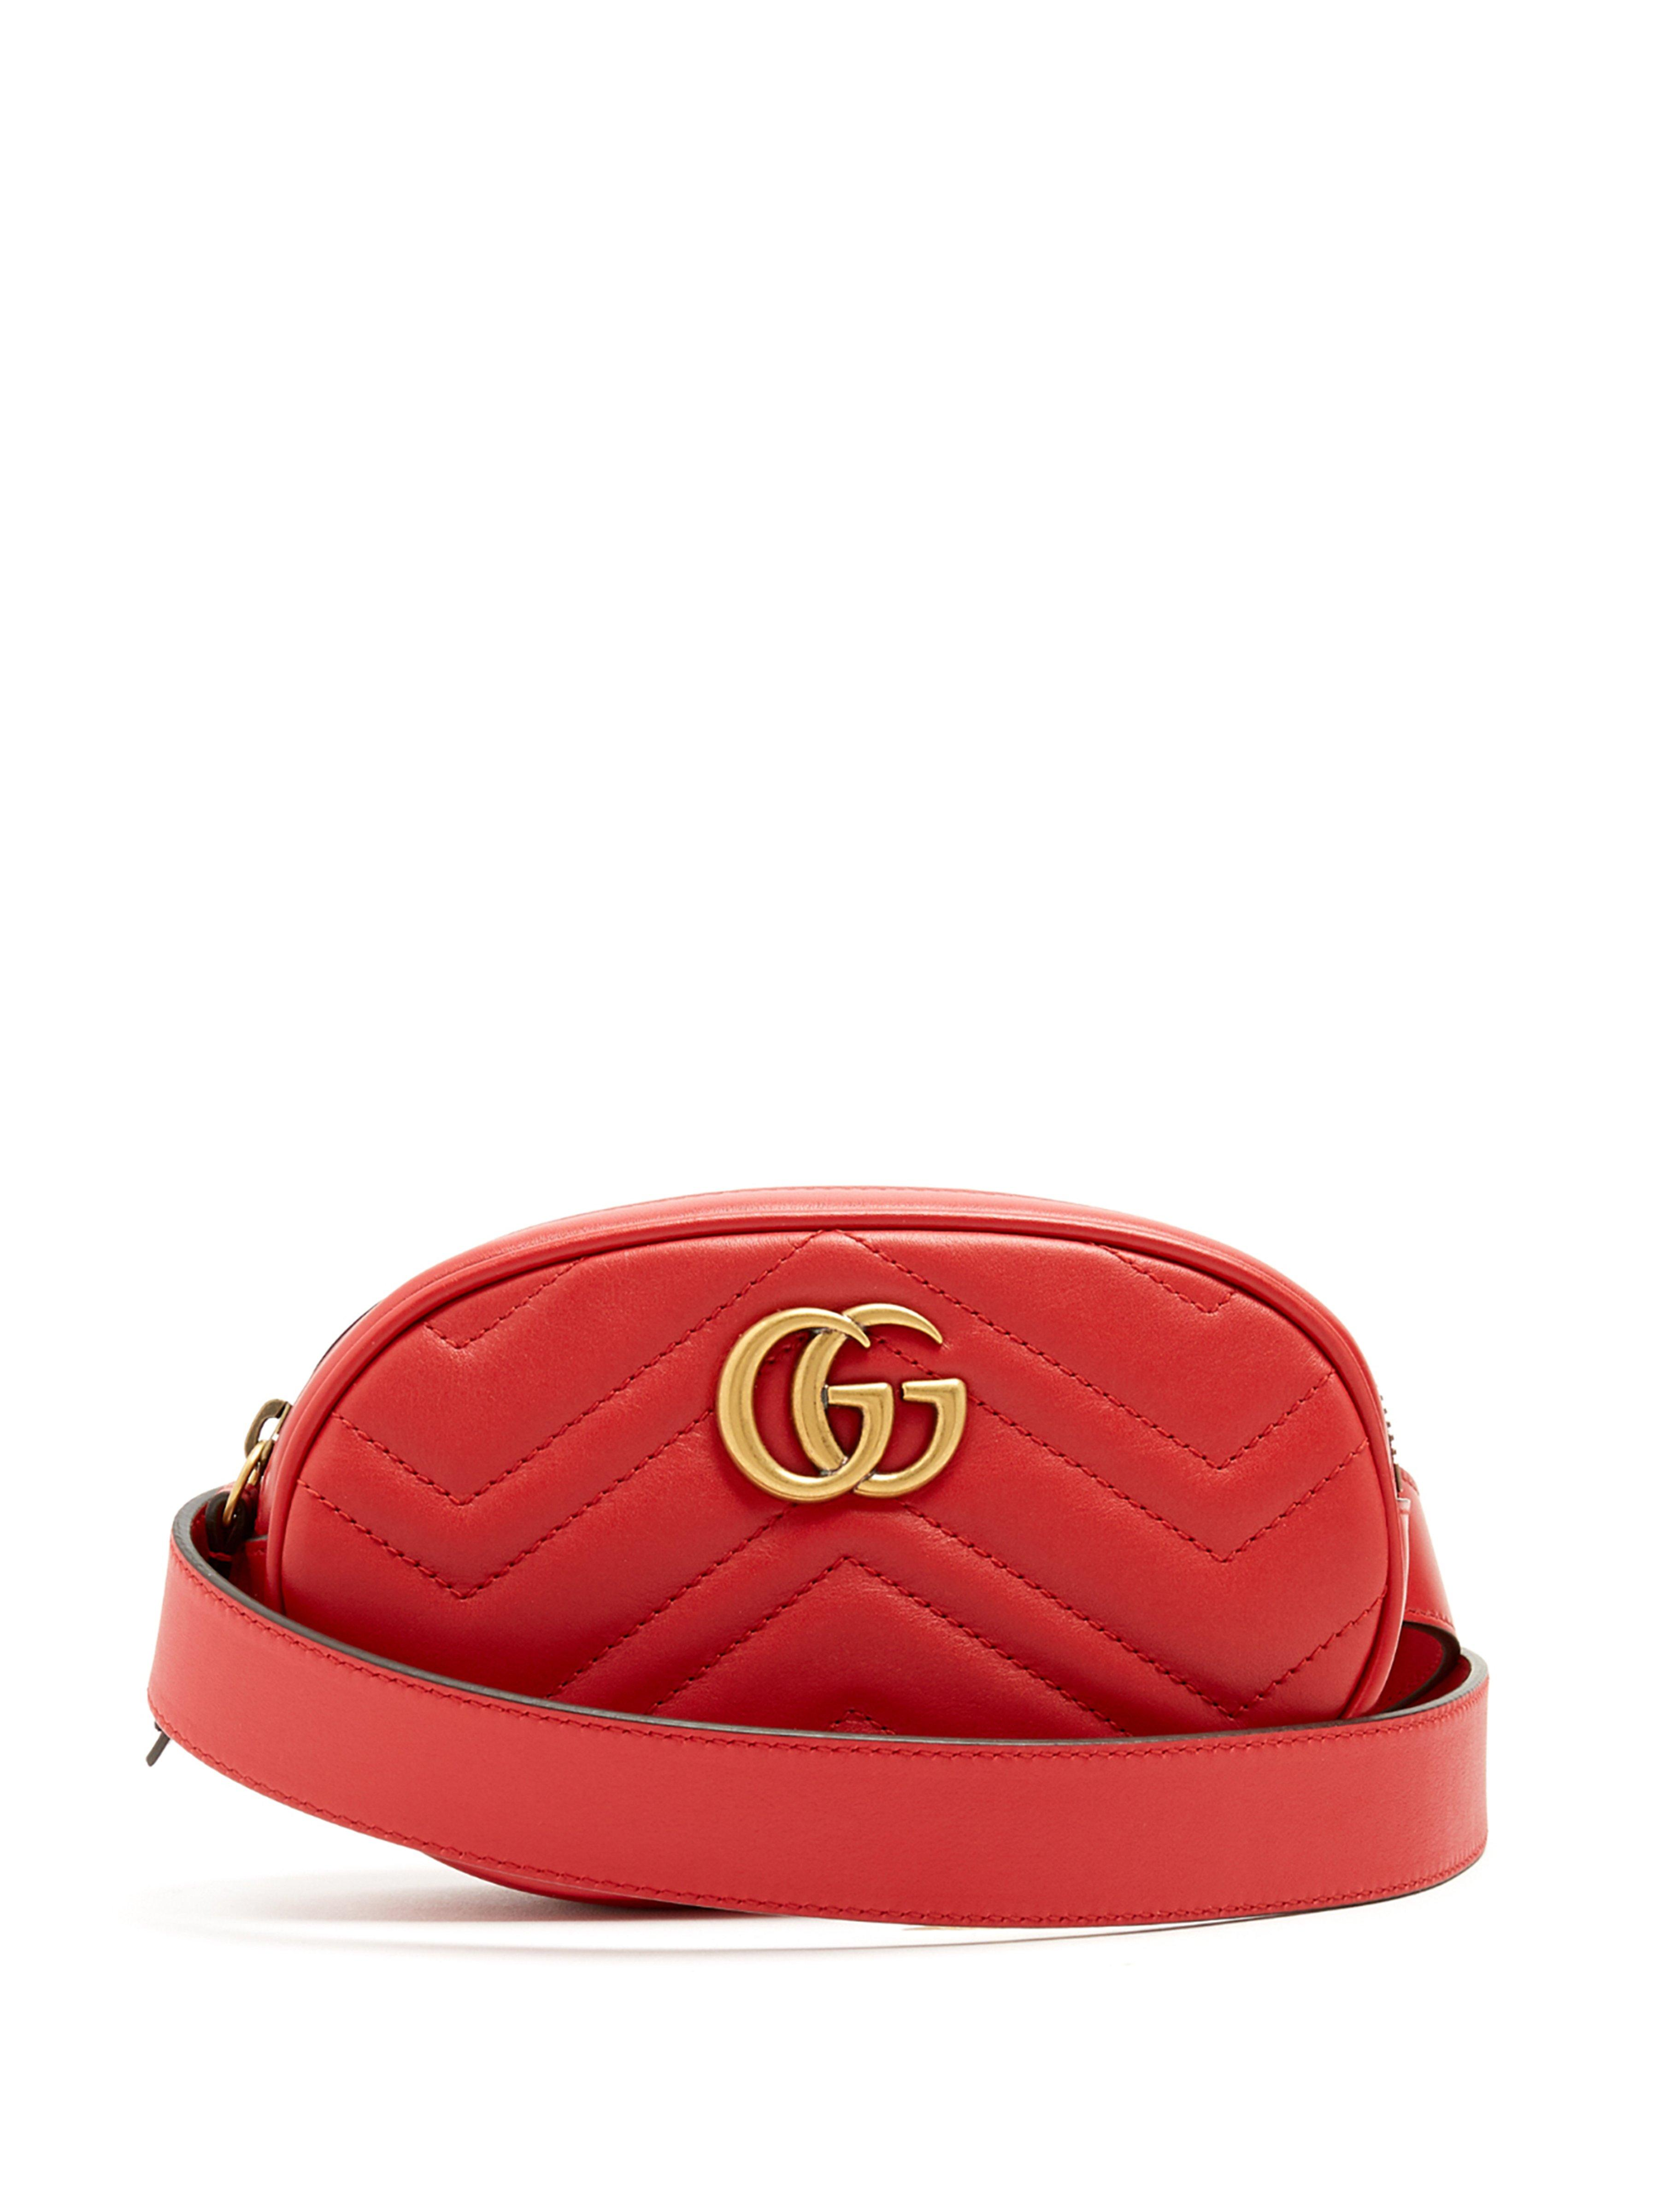 d177a5bd028c Gucci Gg Marmont Quilted Leather Belt Bag in Red - Lyst